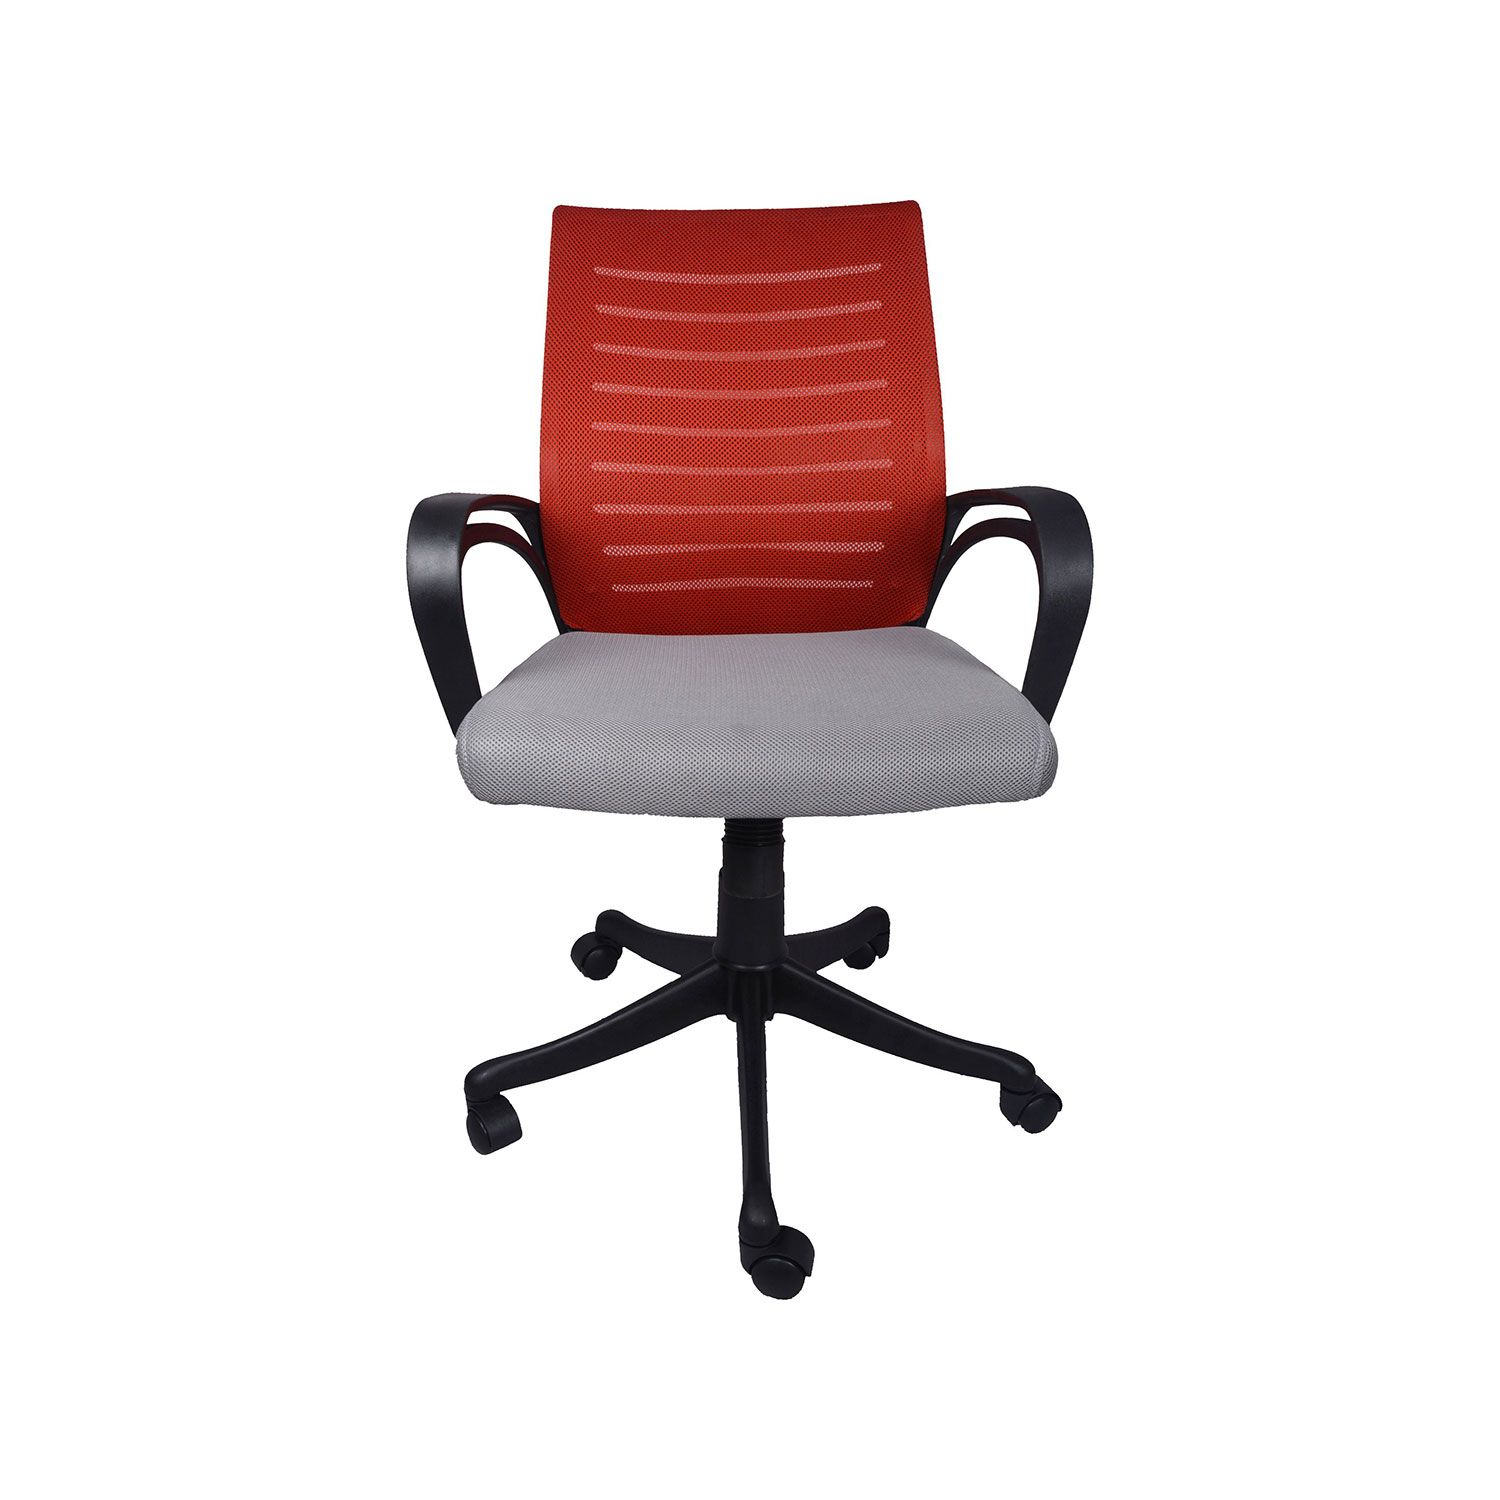 the granate grey and maroon task chair office furniture online